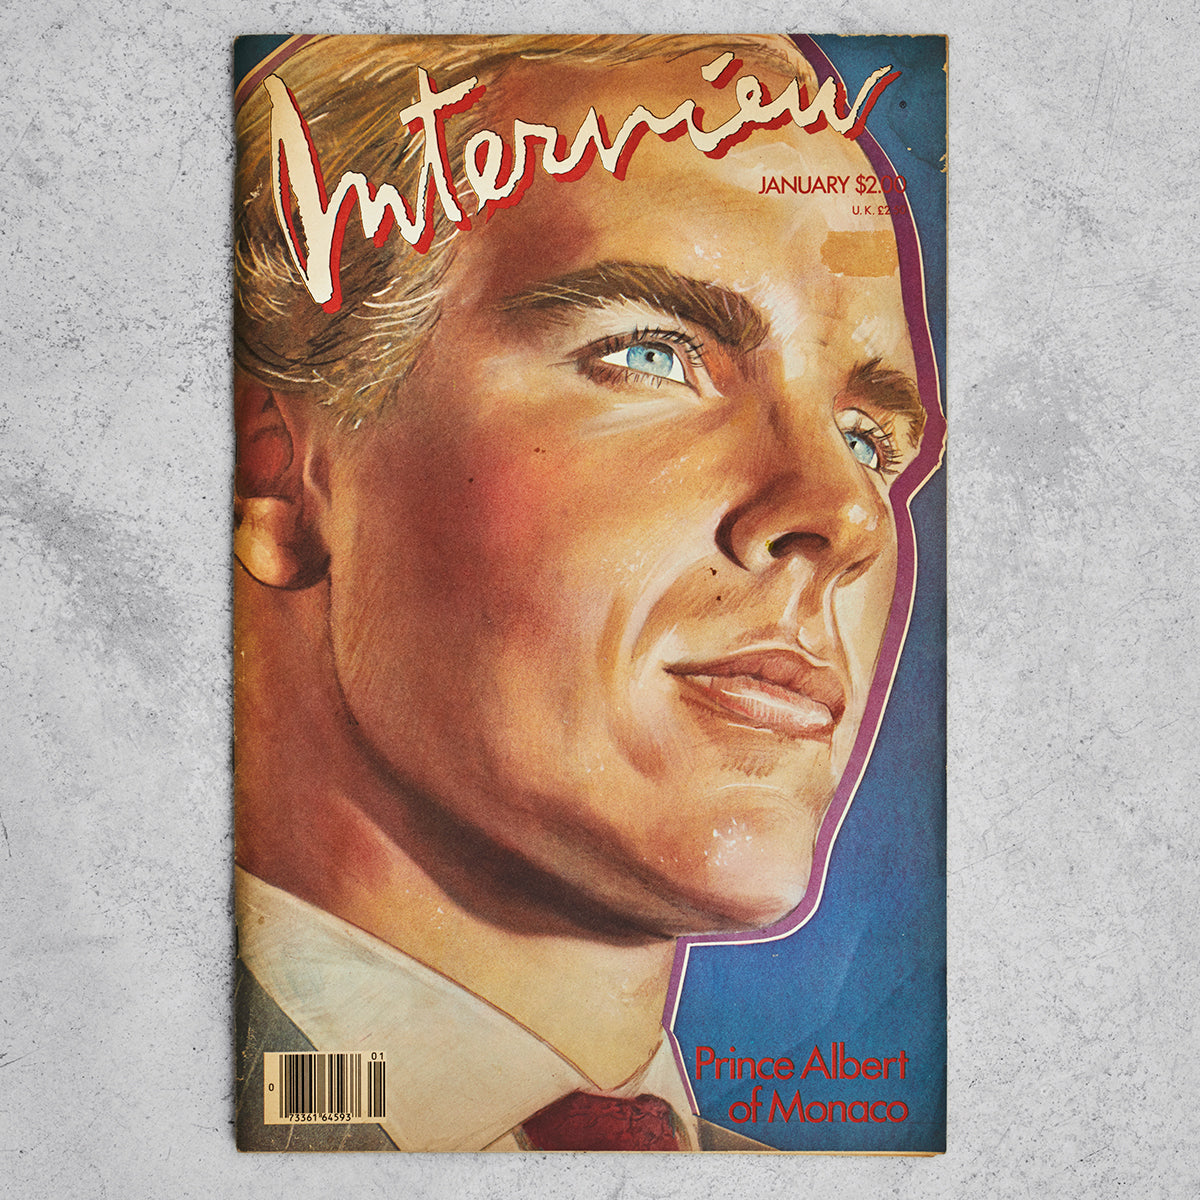 Vintage Interview Magazine - Prince Albert of Monaco